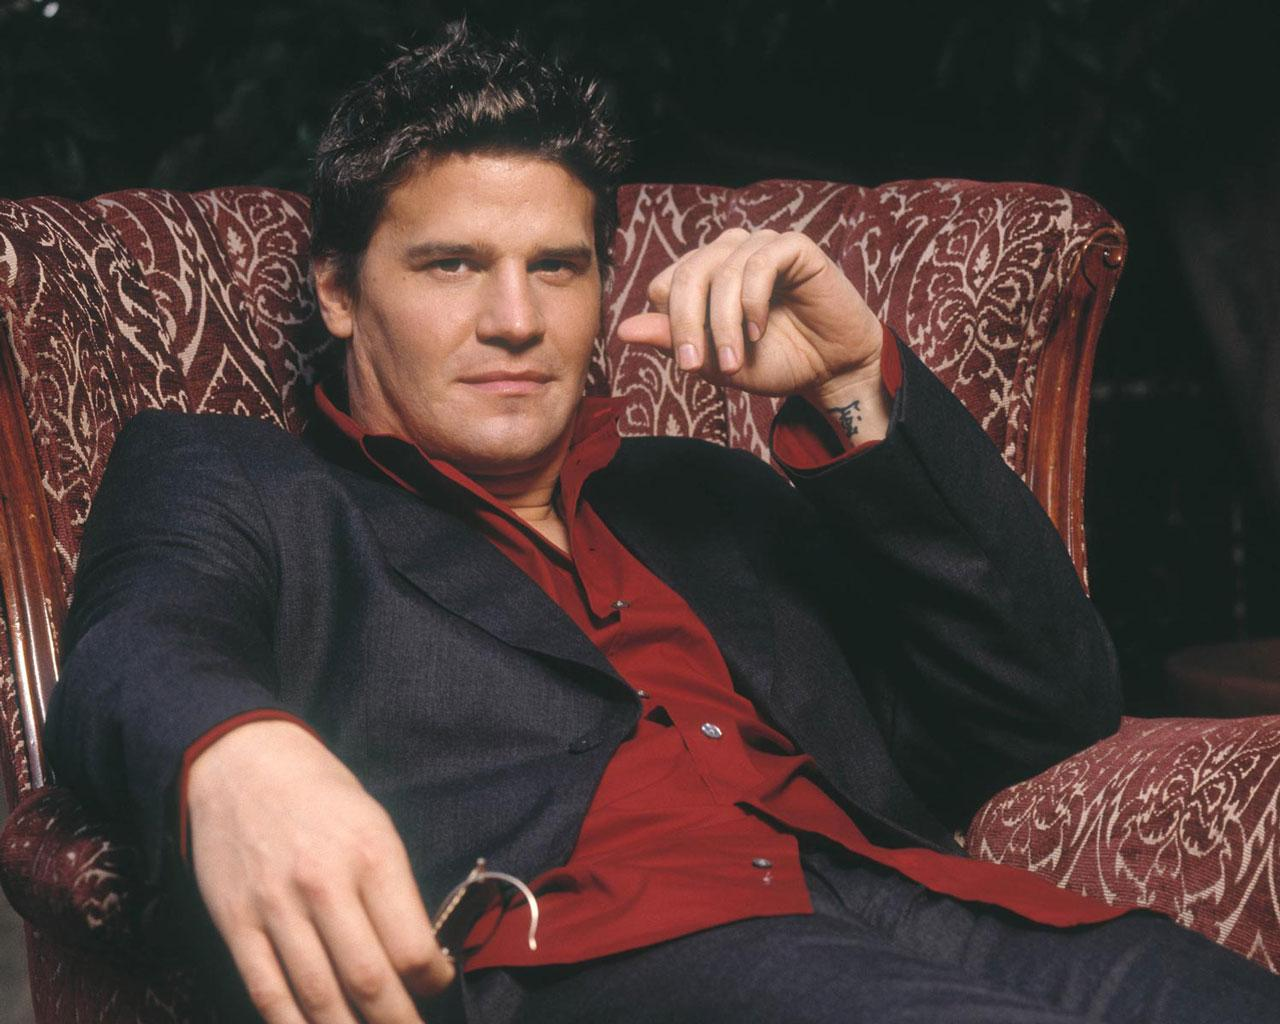 David Boreanaz Wallpaper #2 1280 x 1024